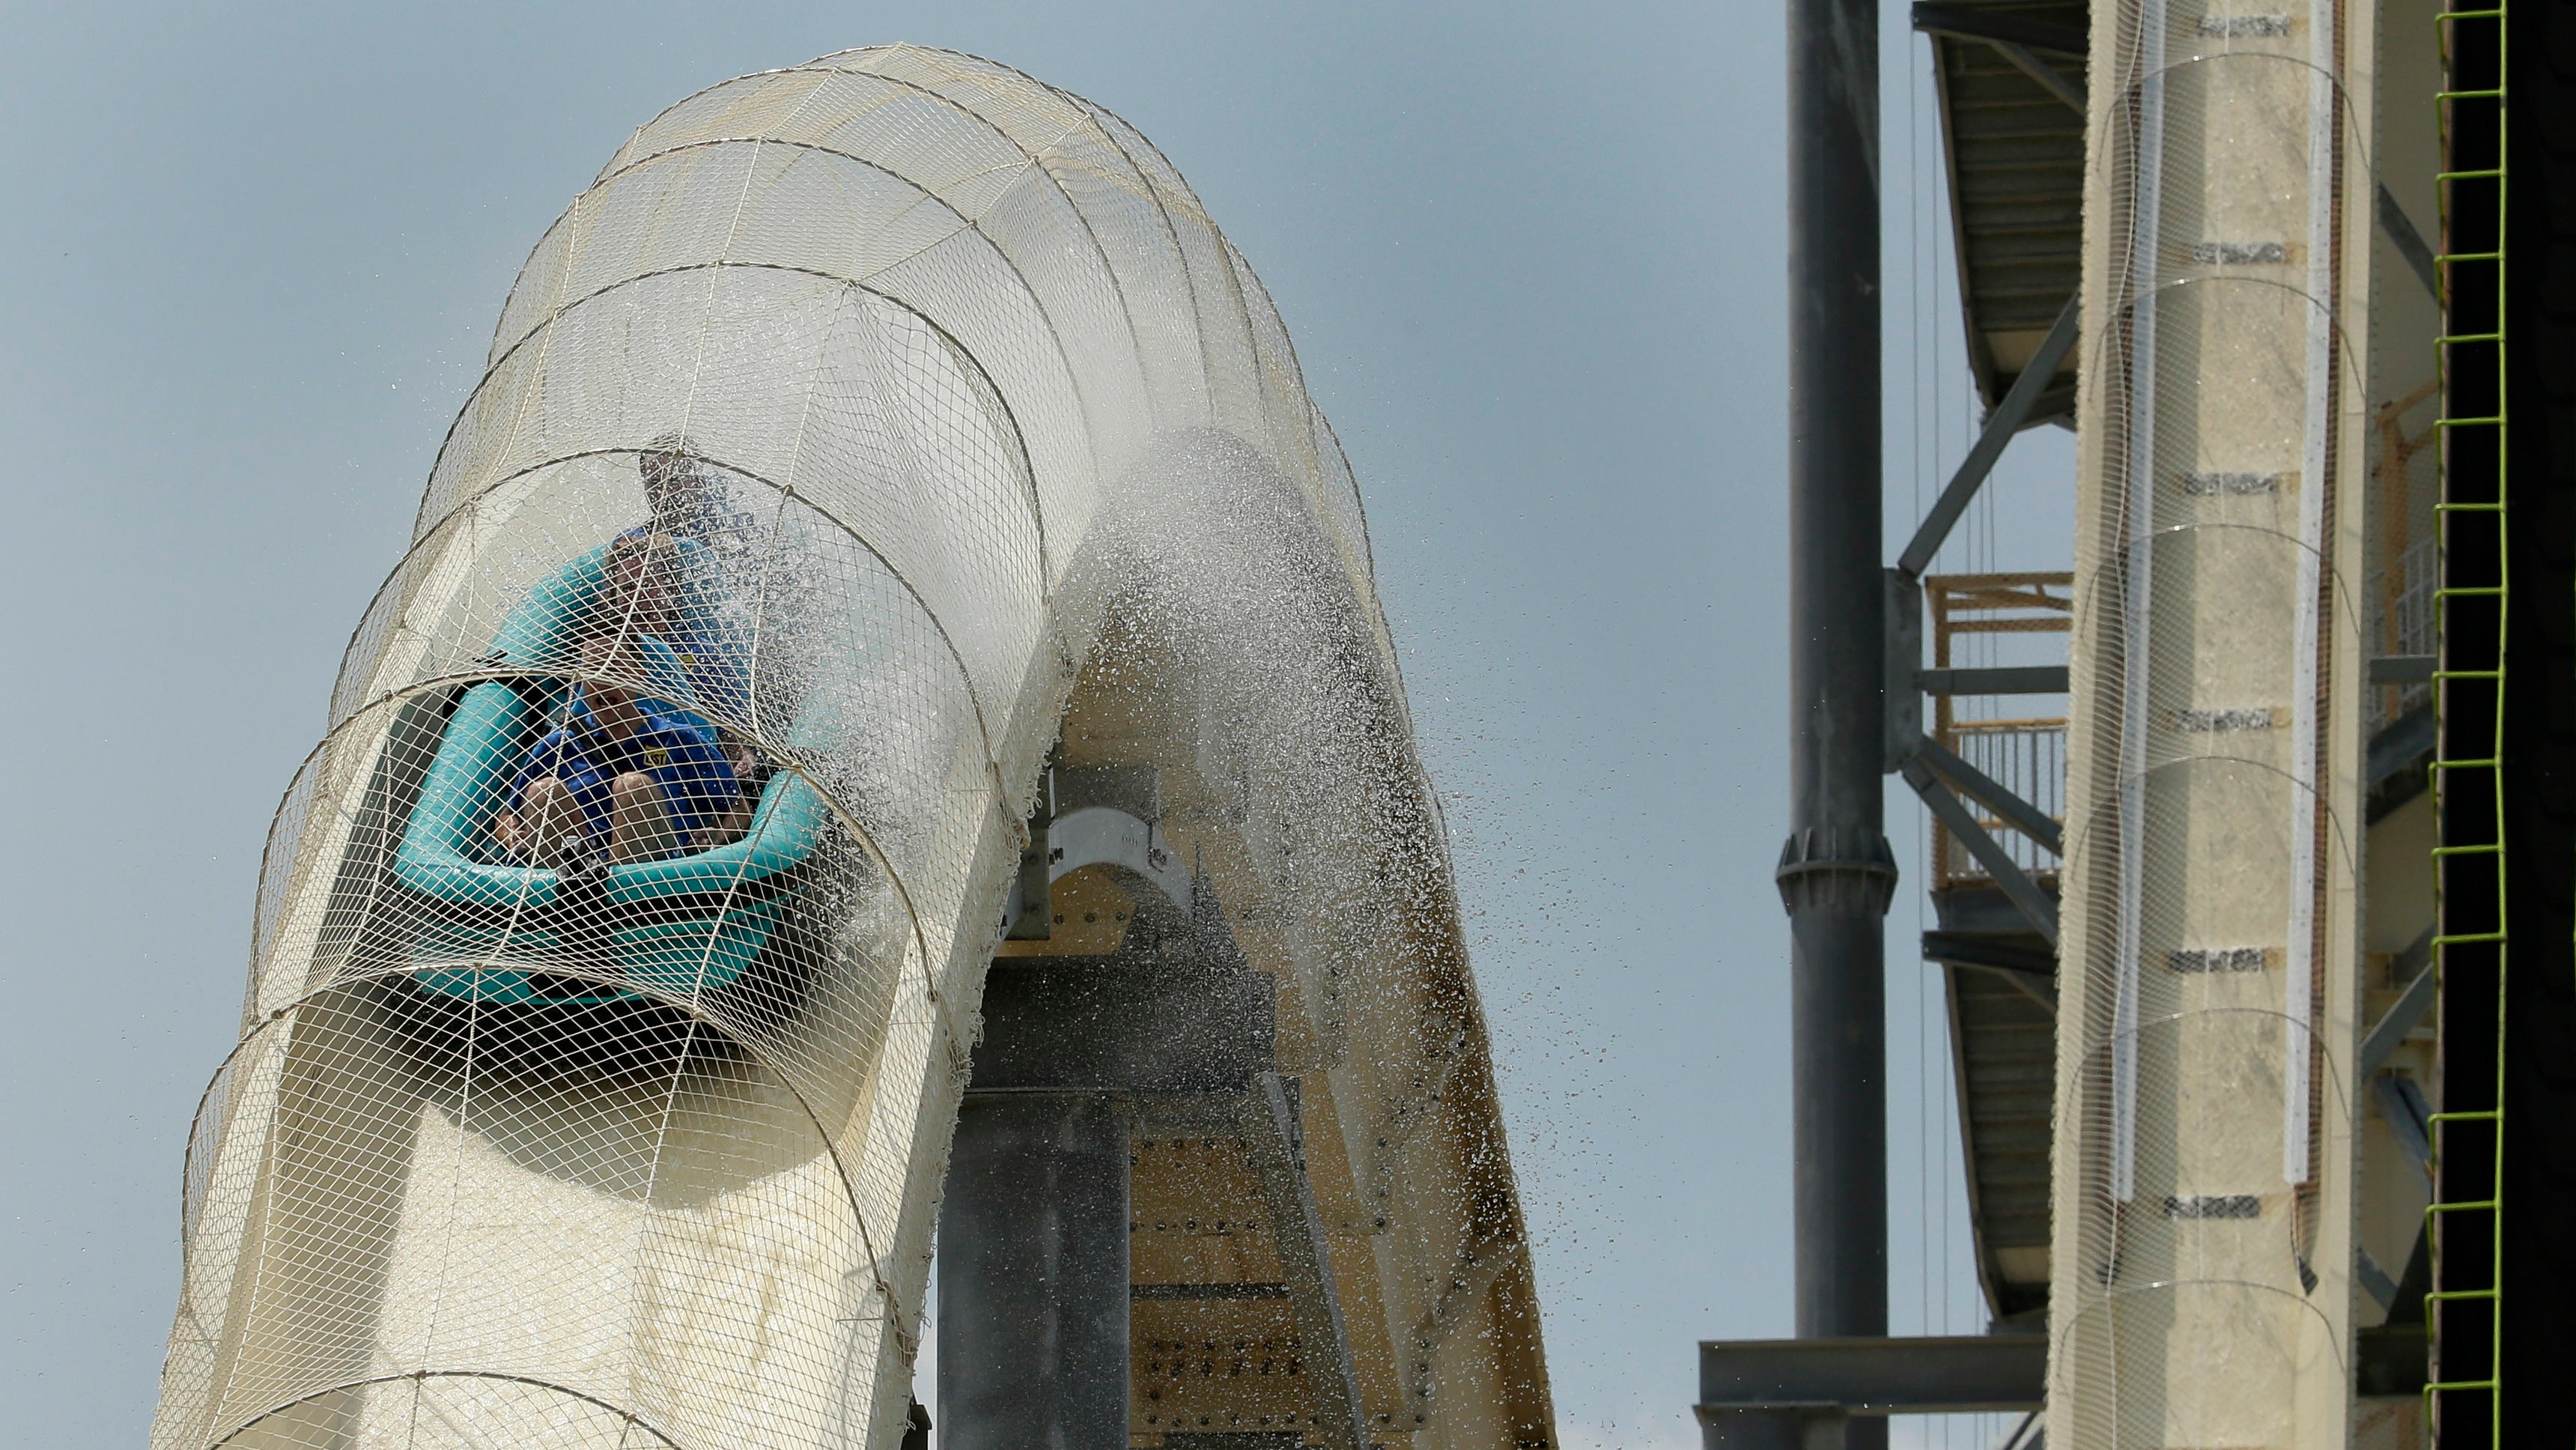 Operators Of Verrückt, World's Largest Water Slide, Charged In 2016 Death Of 10-Year-Old Rider